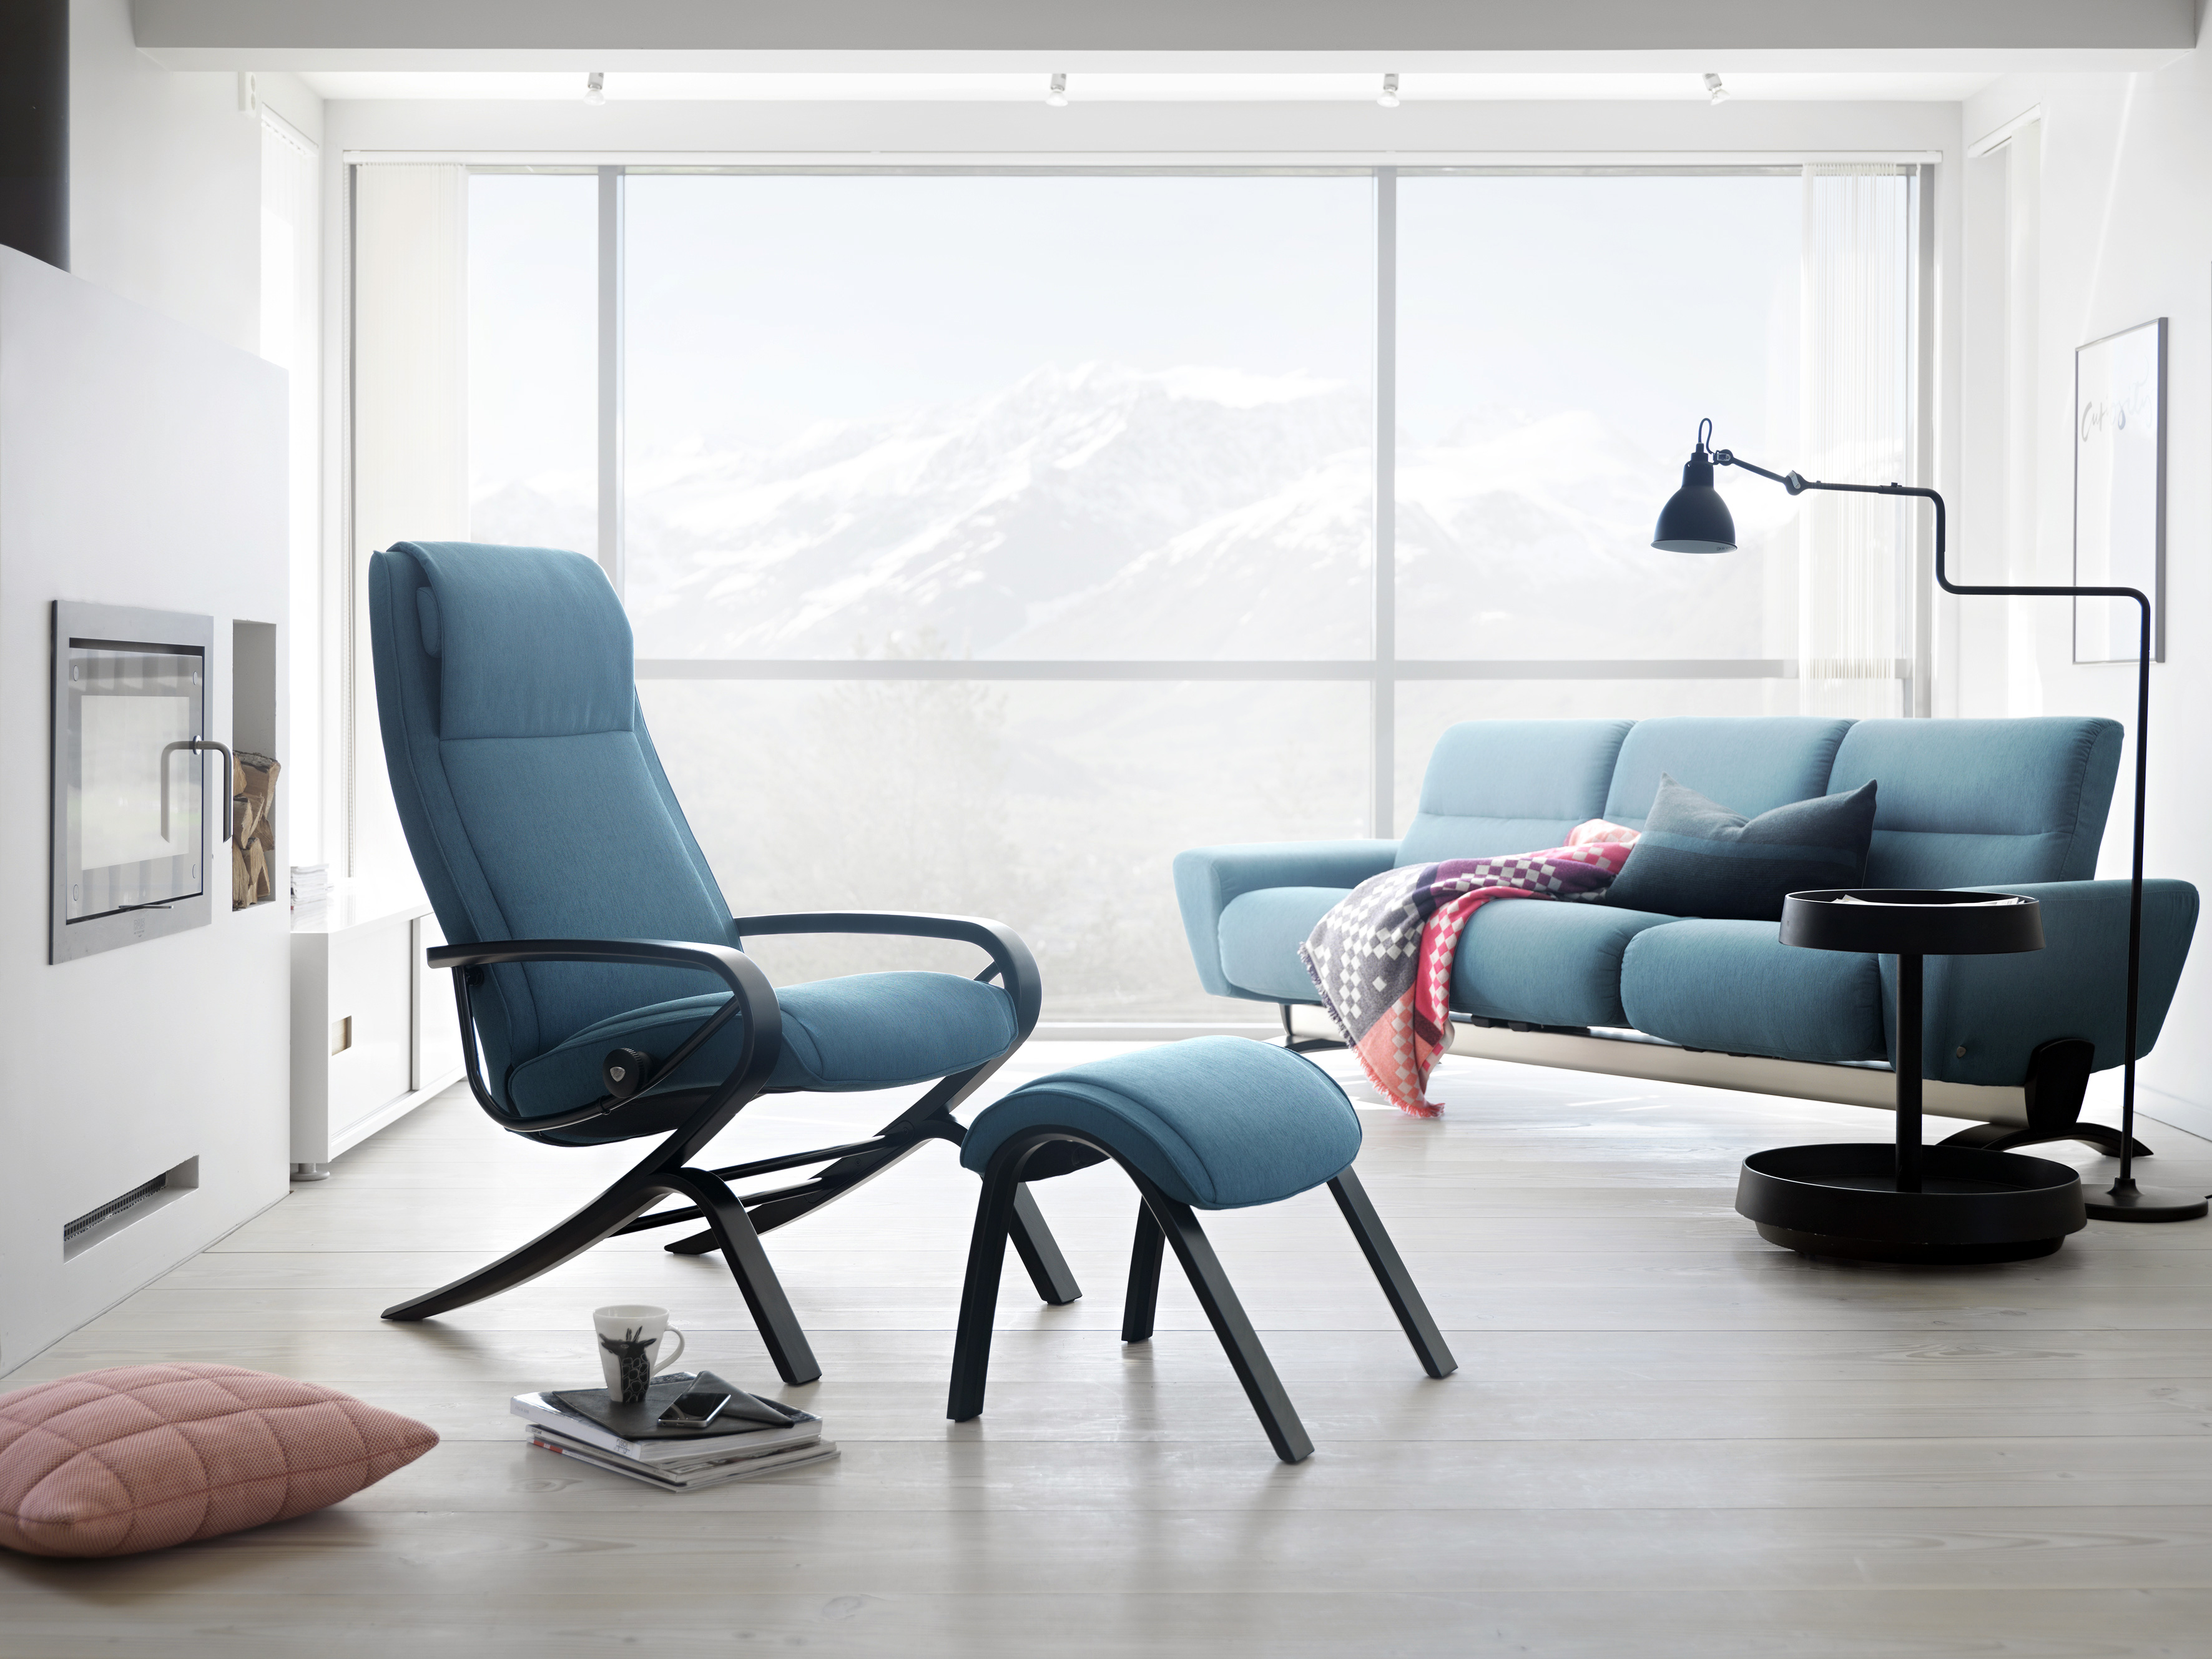 Stressless You Sofa Jensen-lewis Furniture Welcomes Stressless You To The